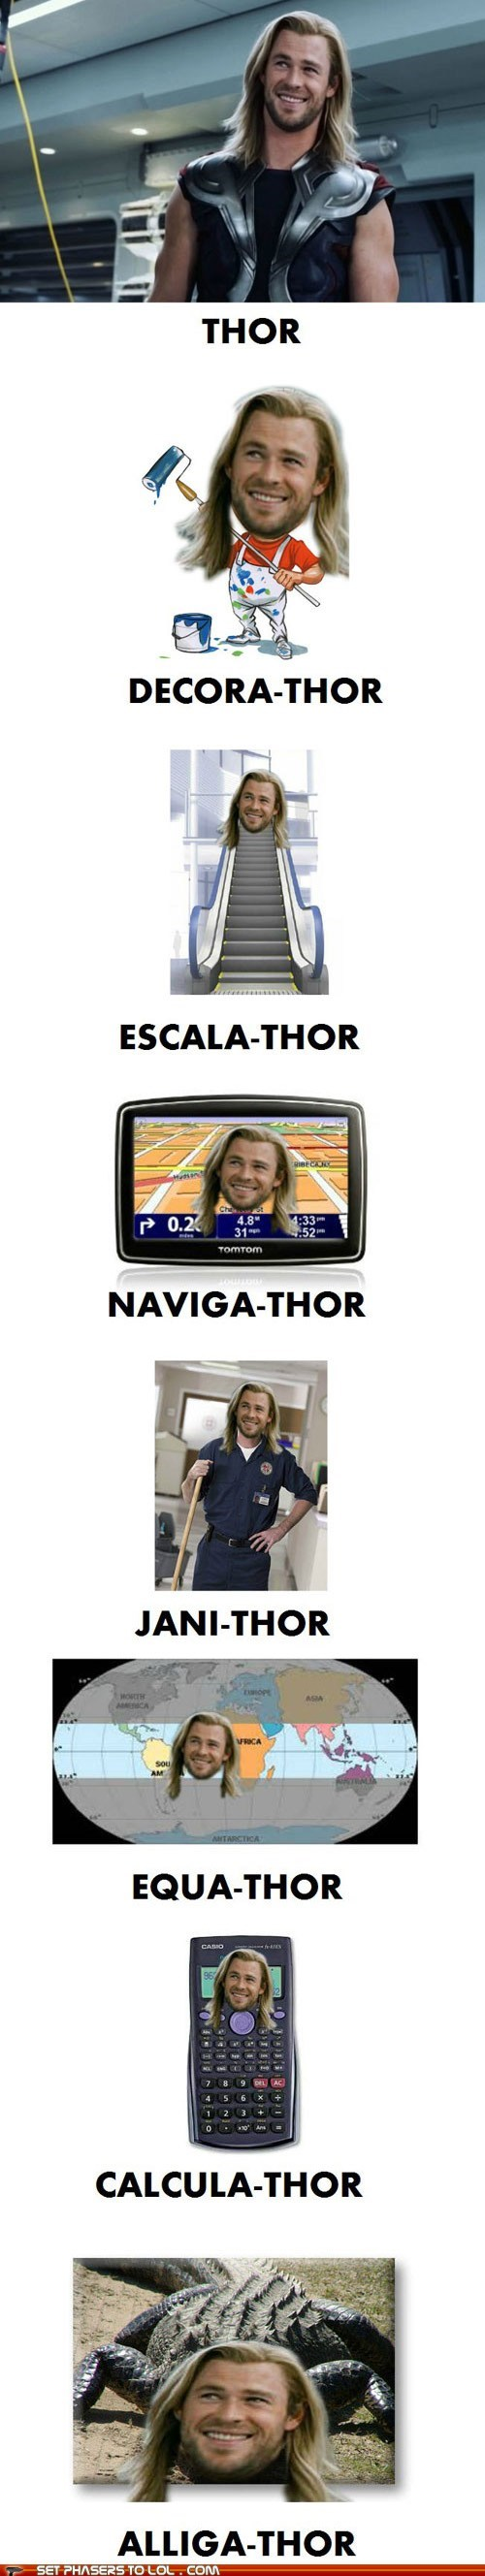 chris hemsworth,jobs,name,puns,superheroes,Thor